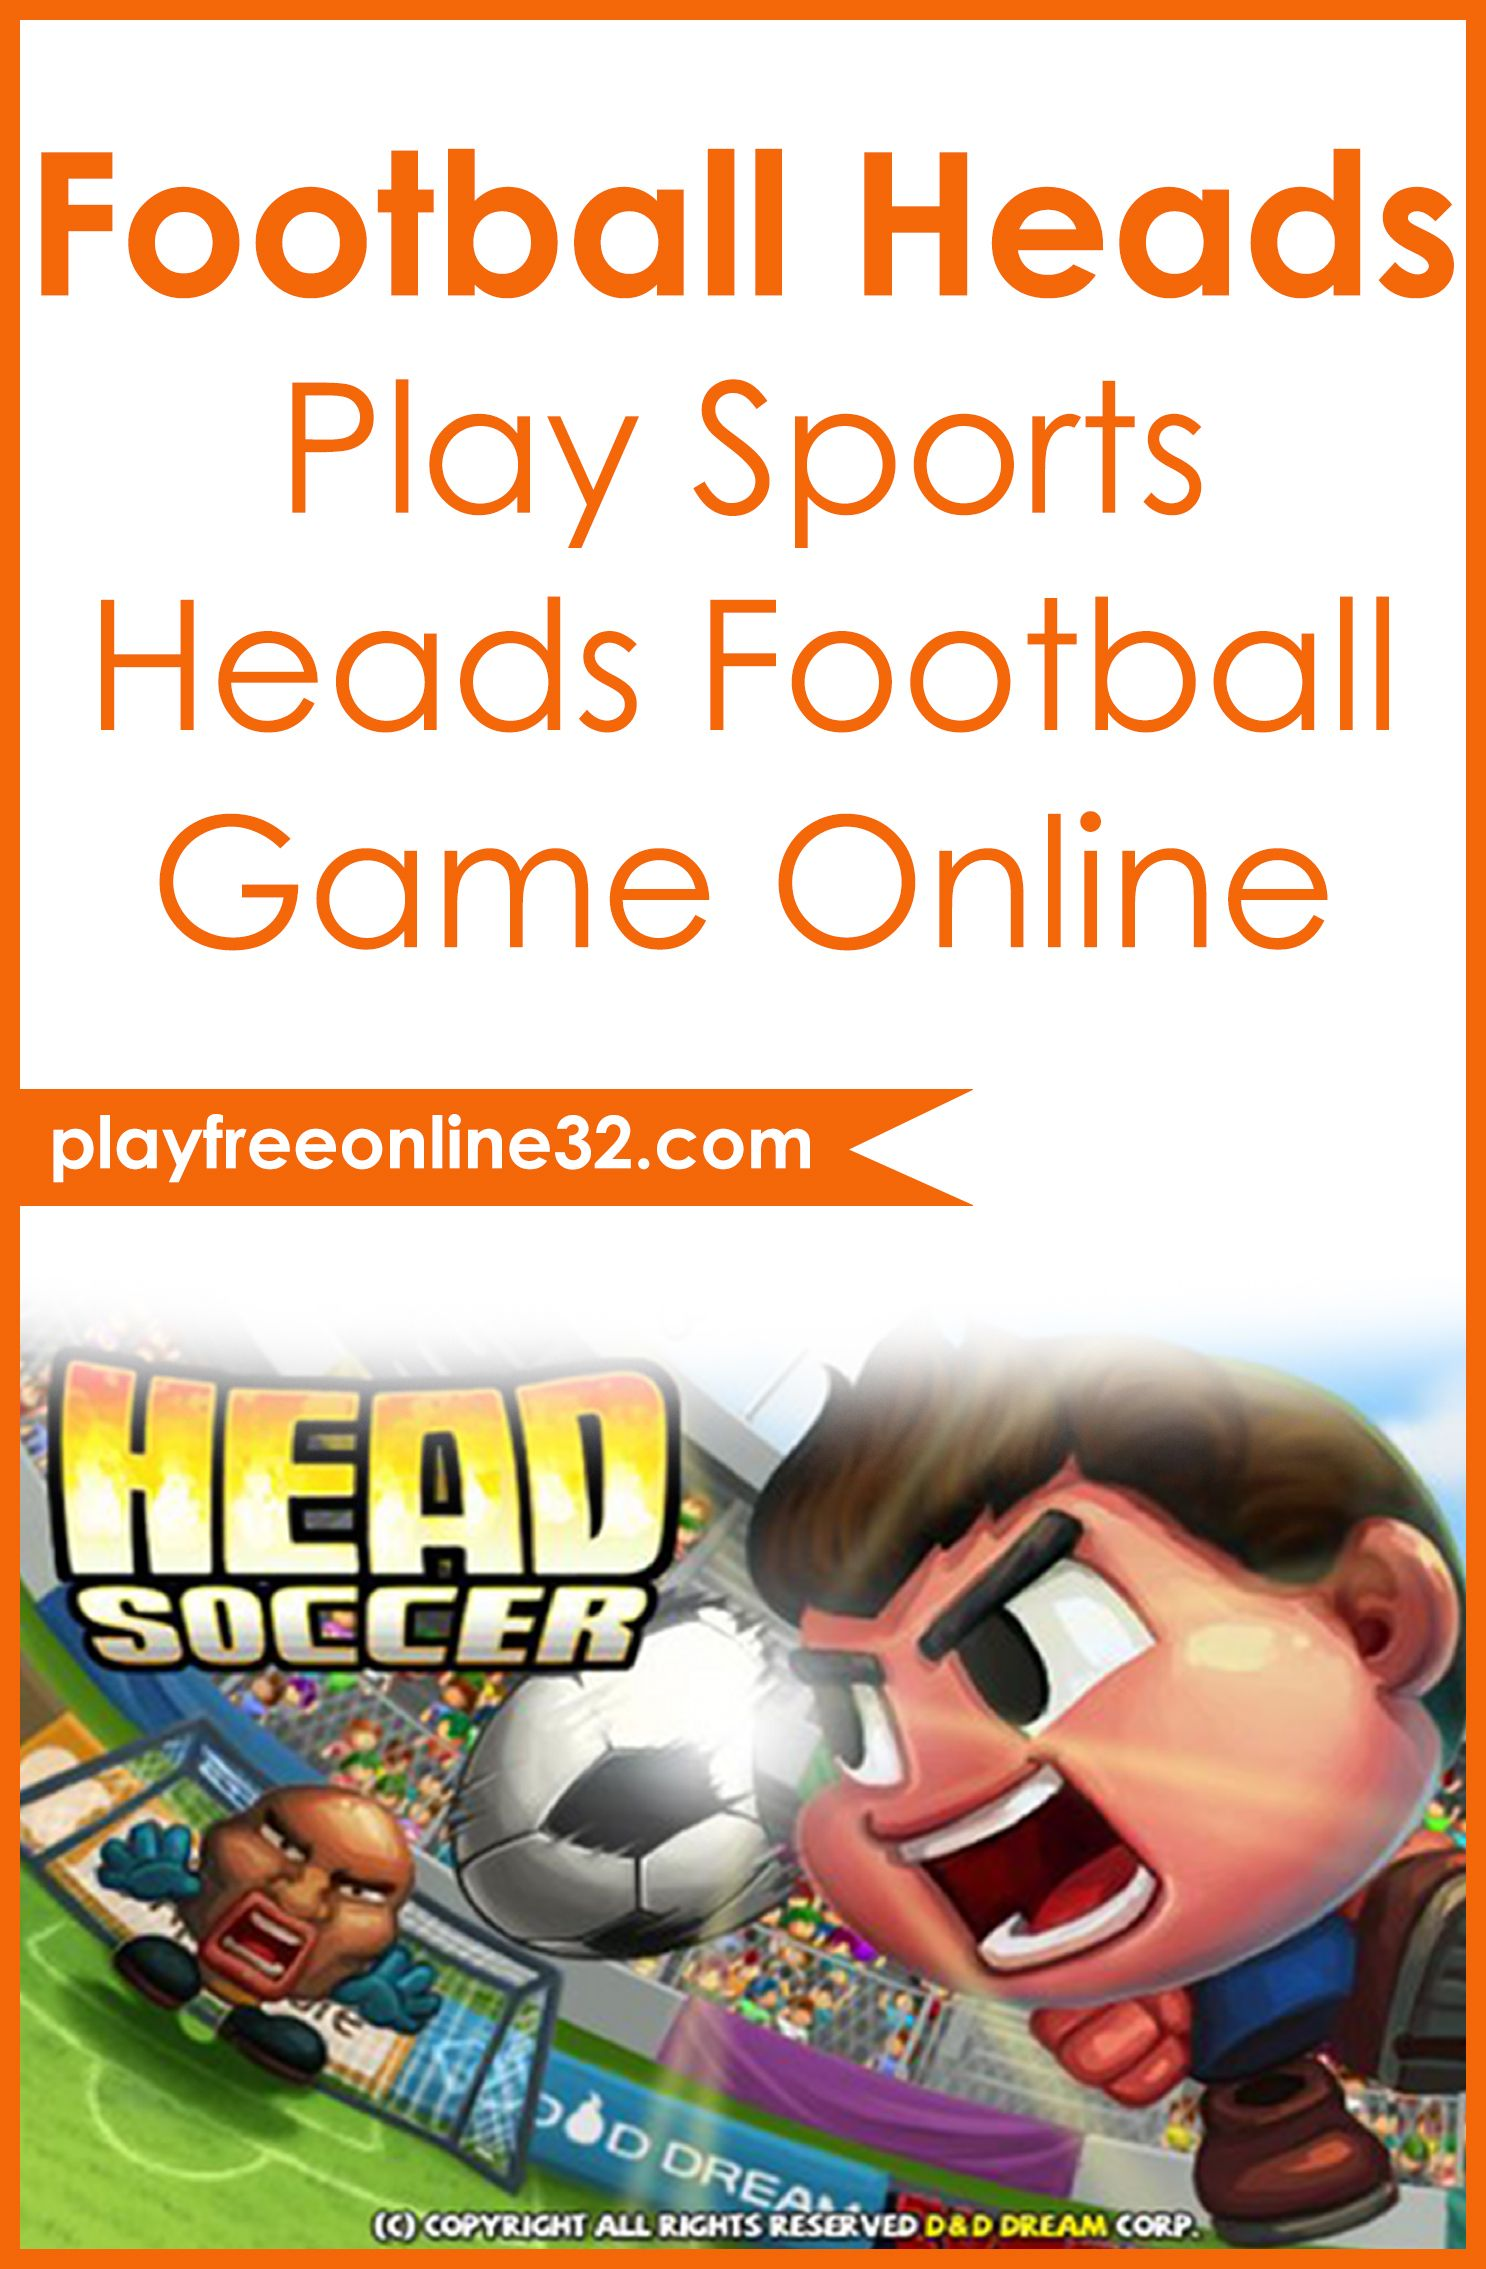 Sports Head Soccer Unblocked : sports, soccer, unblocked, Soccer, Unblocked, Online, Soccer,, Football, Games, Play,, Heads